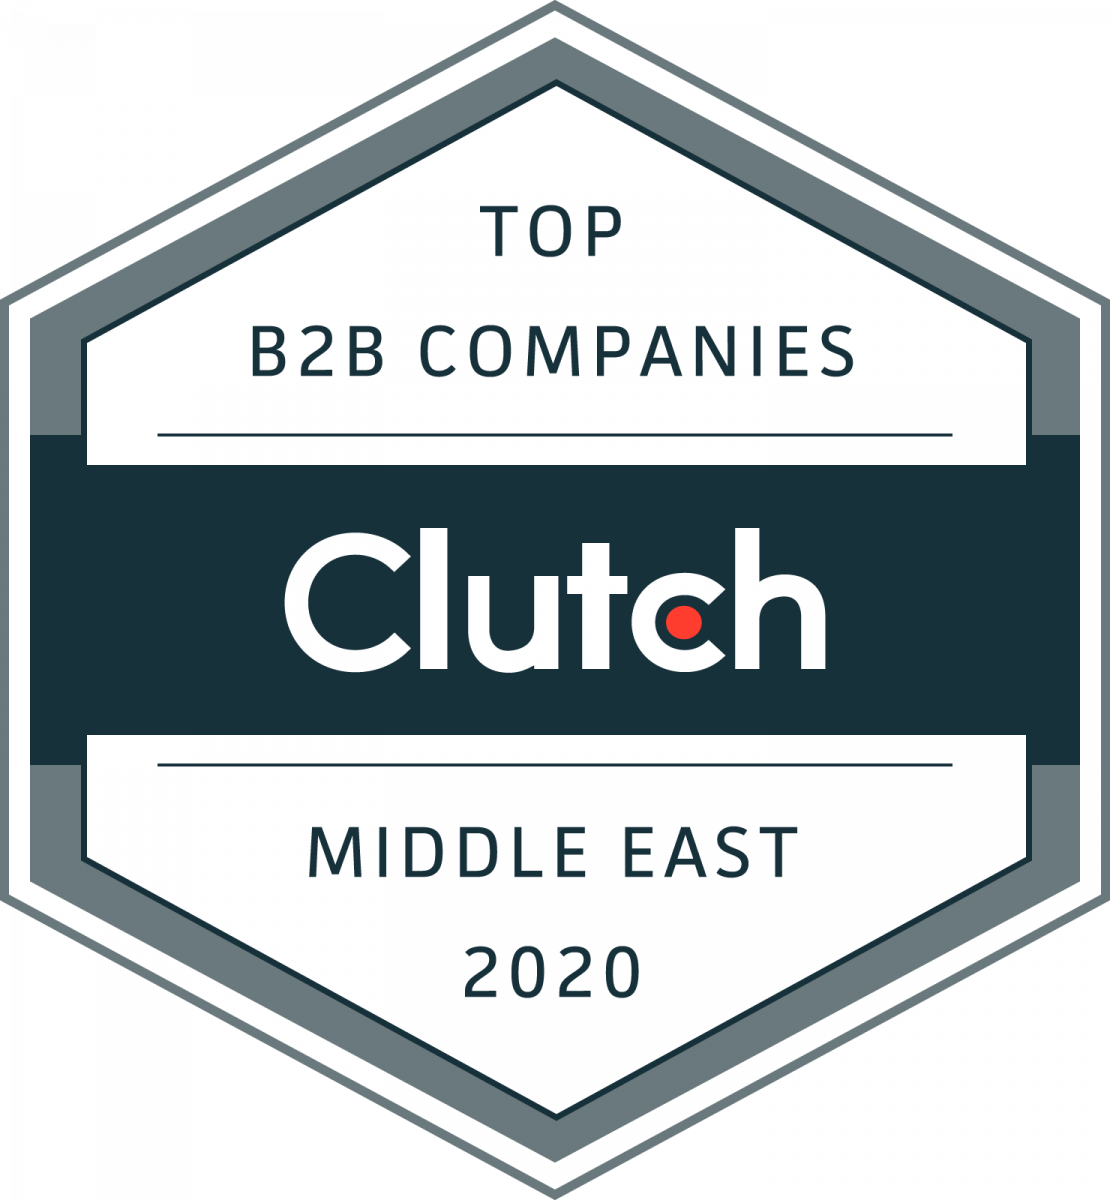 Top B2B Companies Middle East